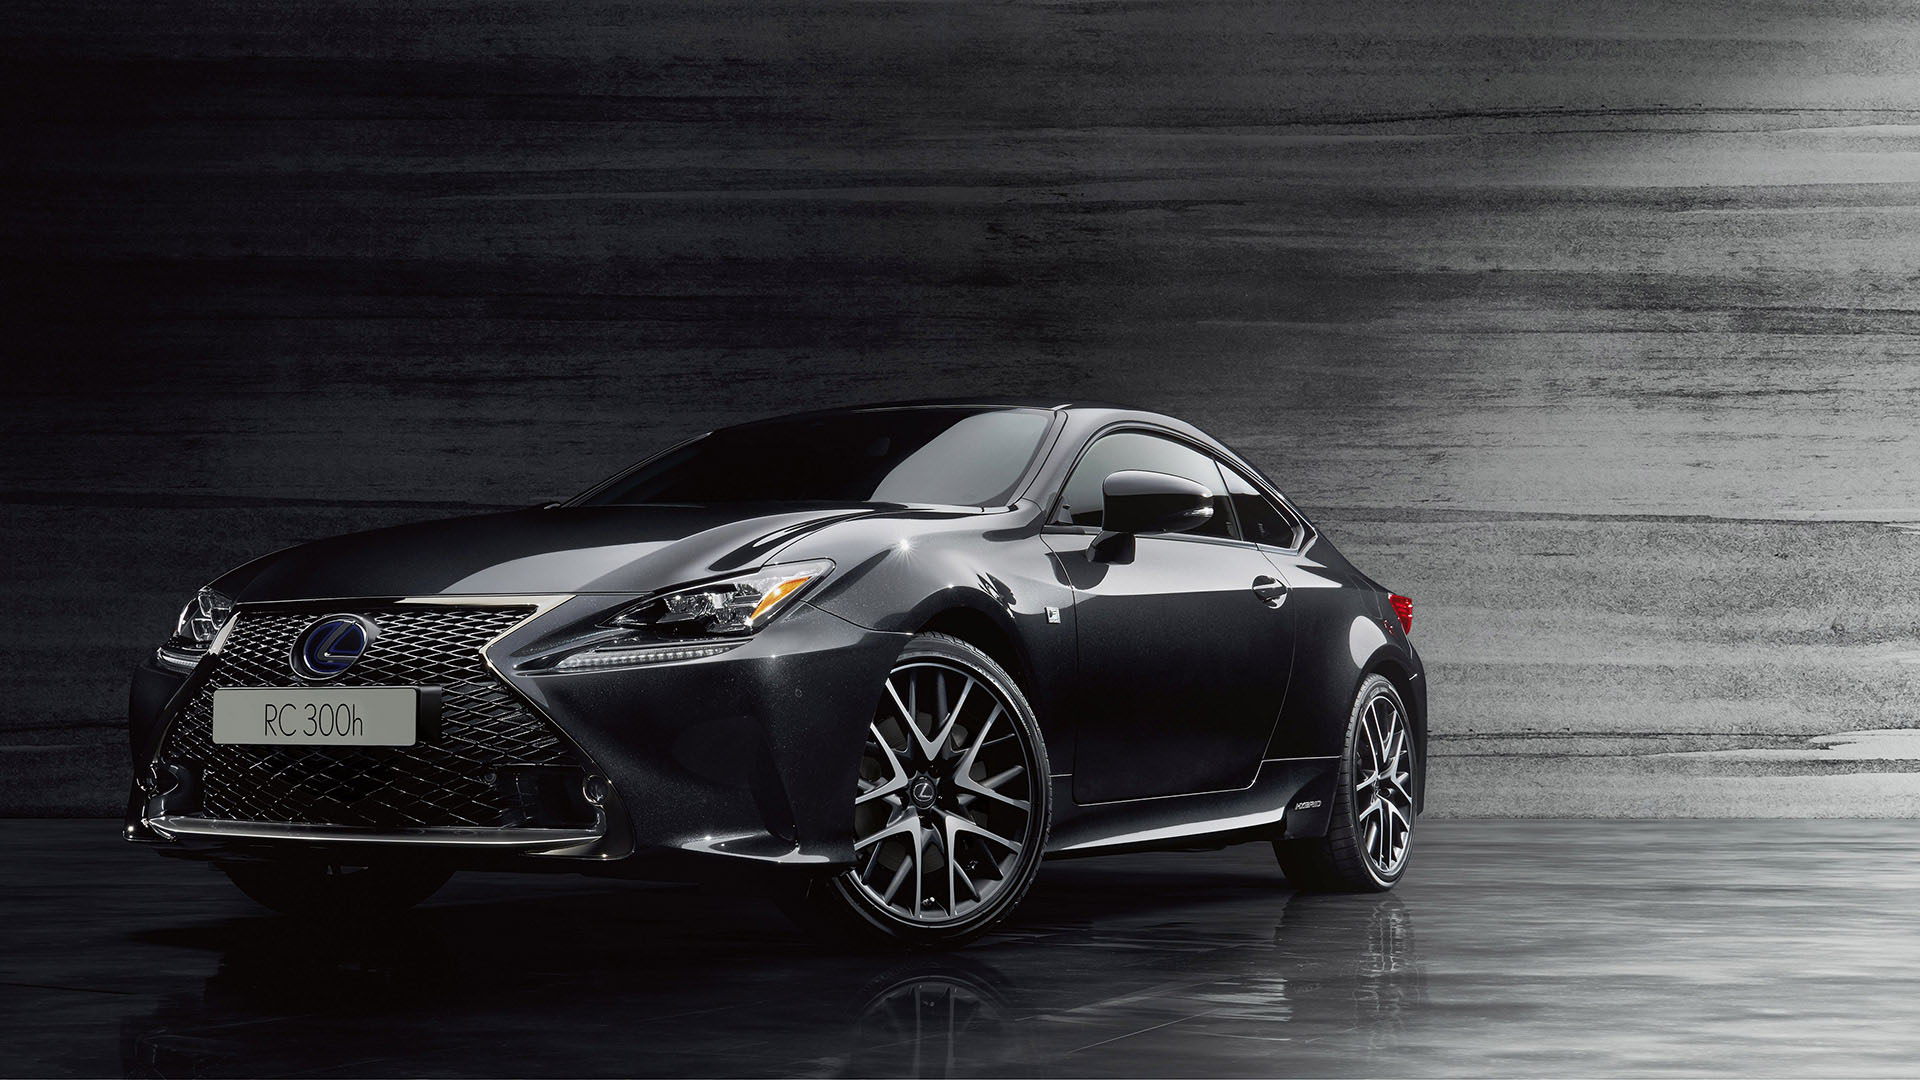 2018 RC F Sport Black Edition promo